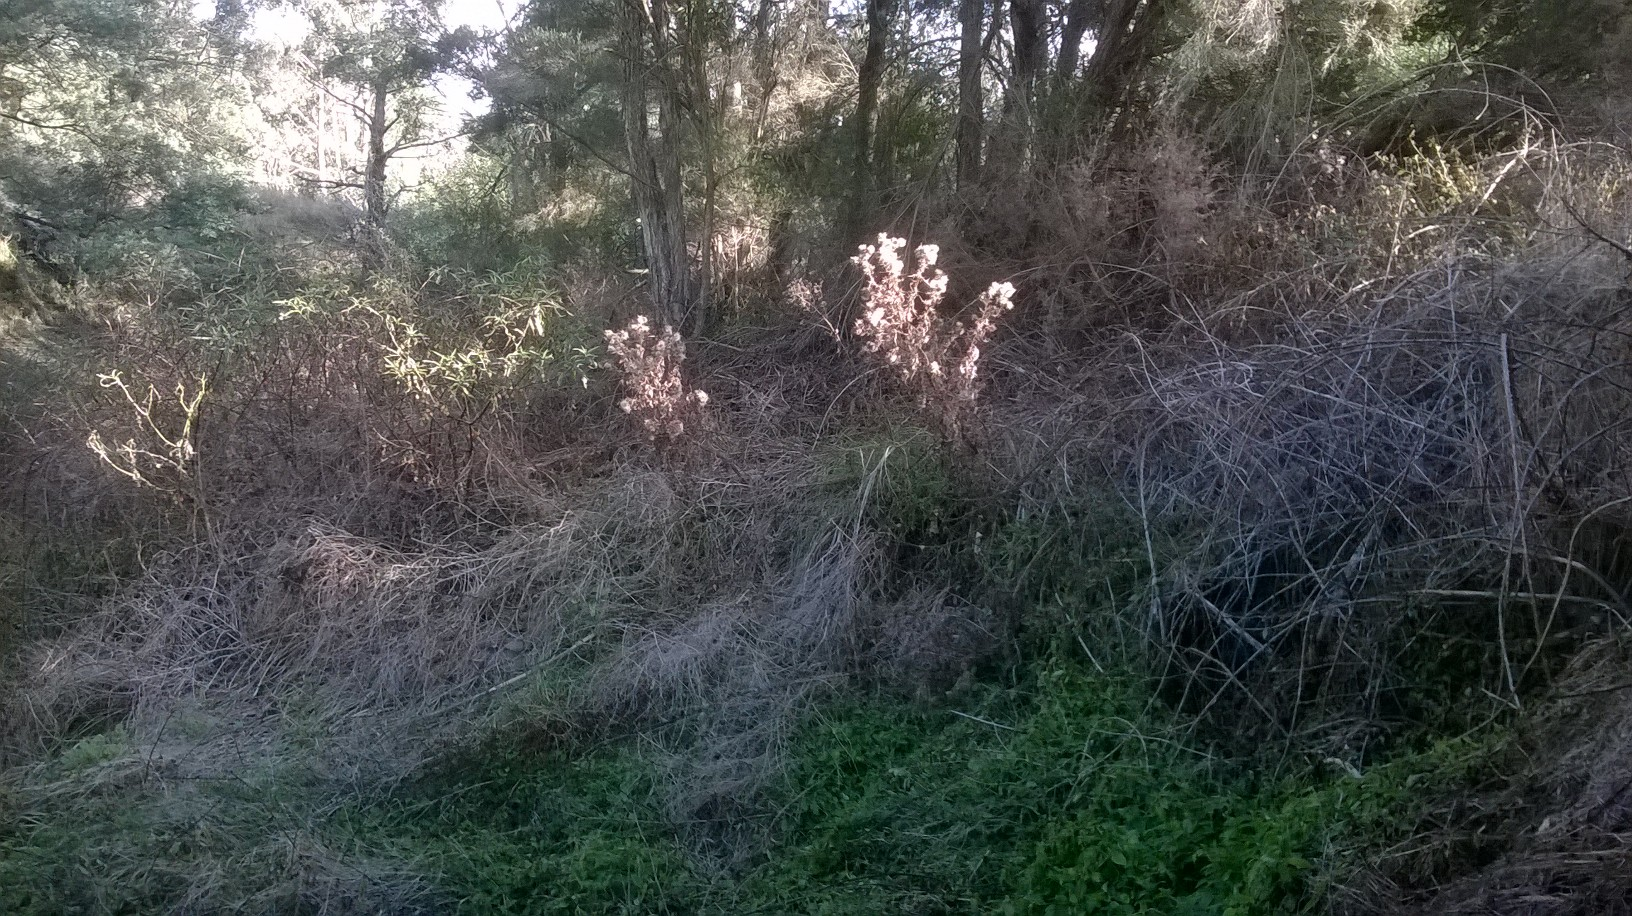 Weeds sprayed on south west bank